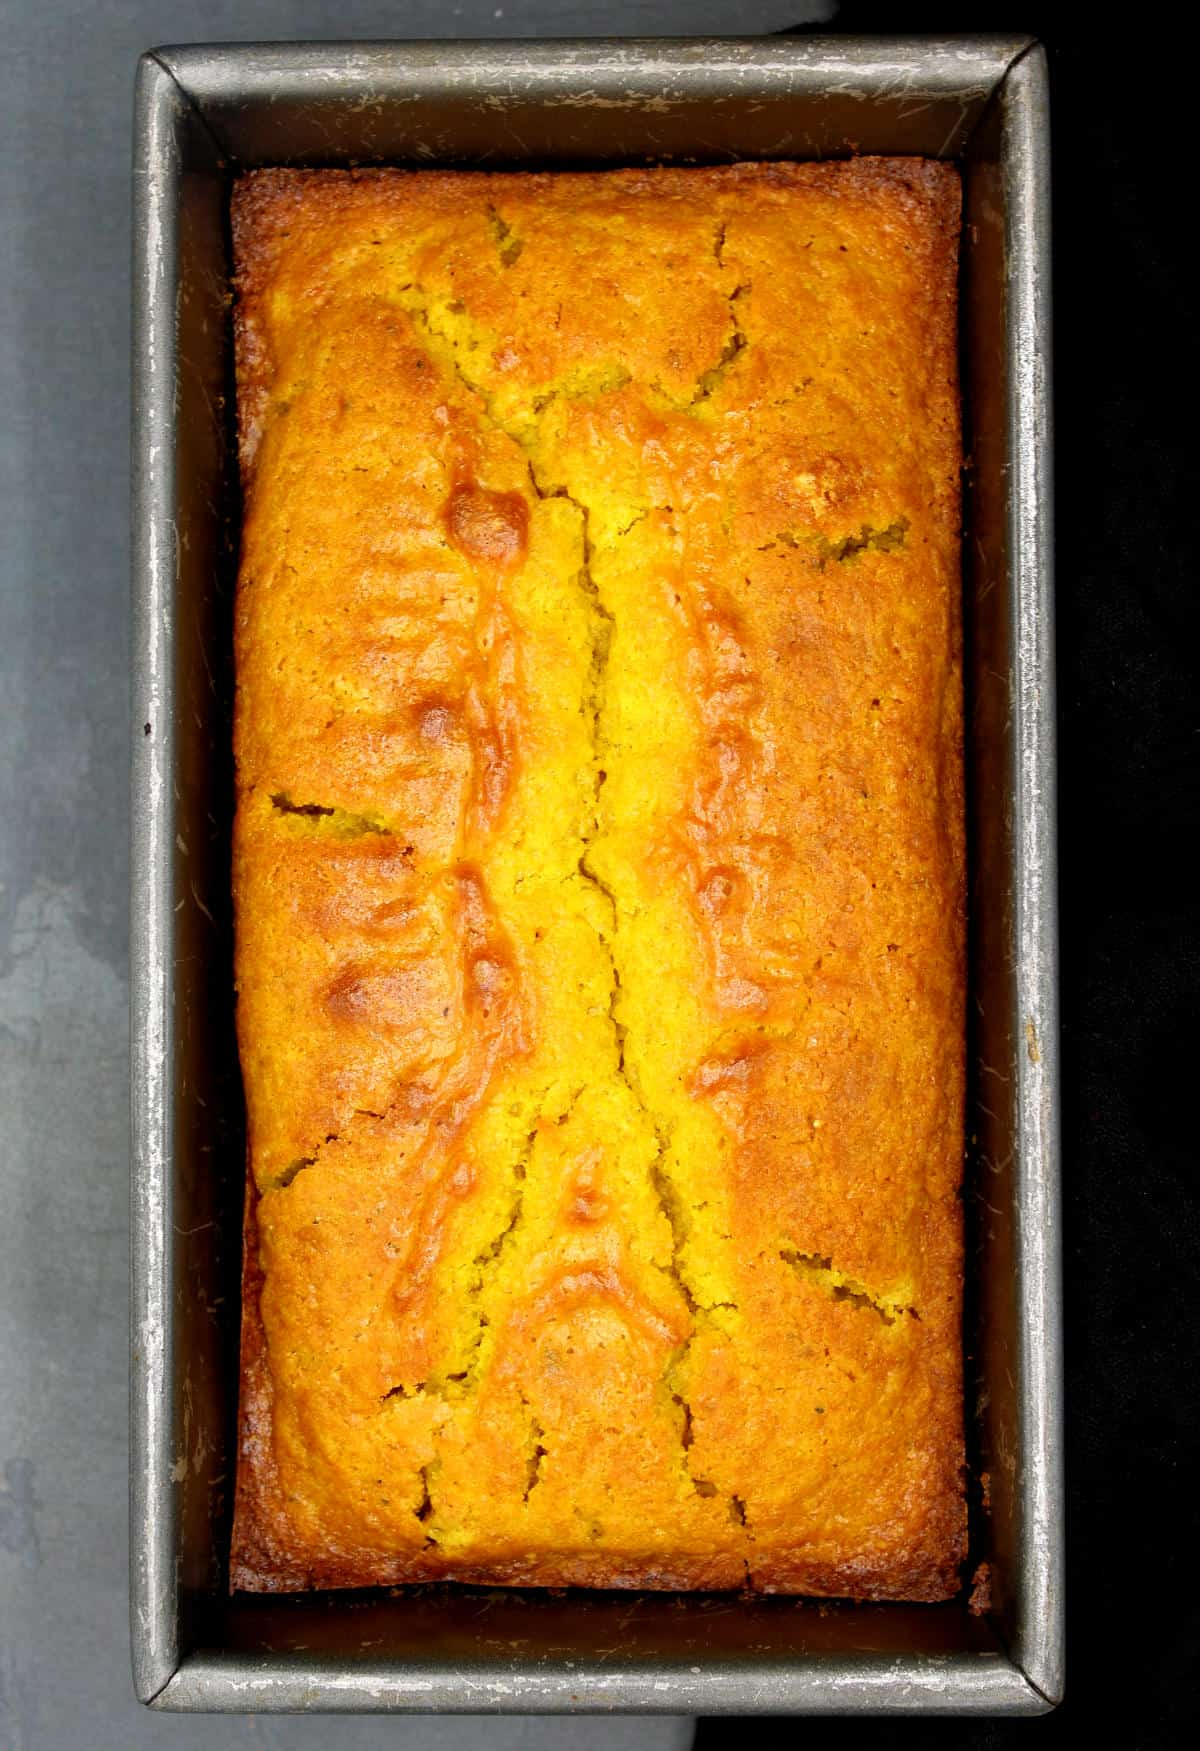 A golden vegan turmeric cake with cardamom freshly baked, in a loaf pan